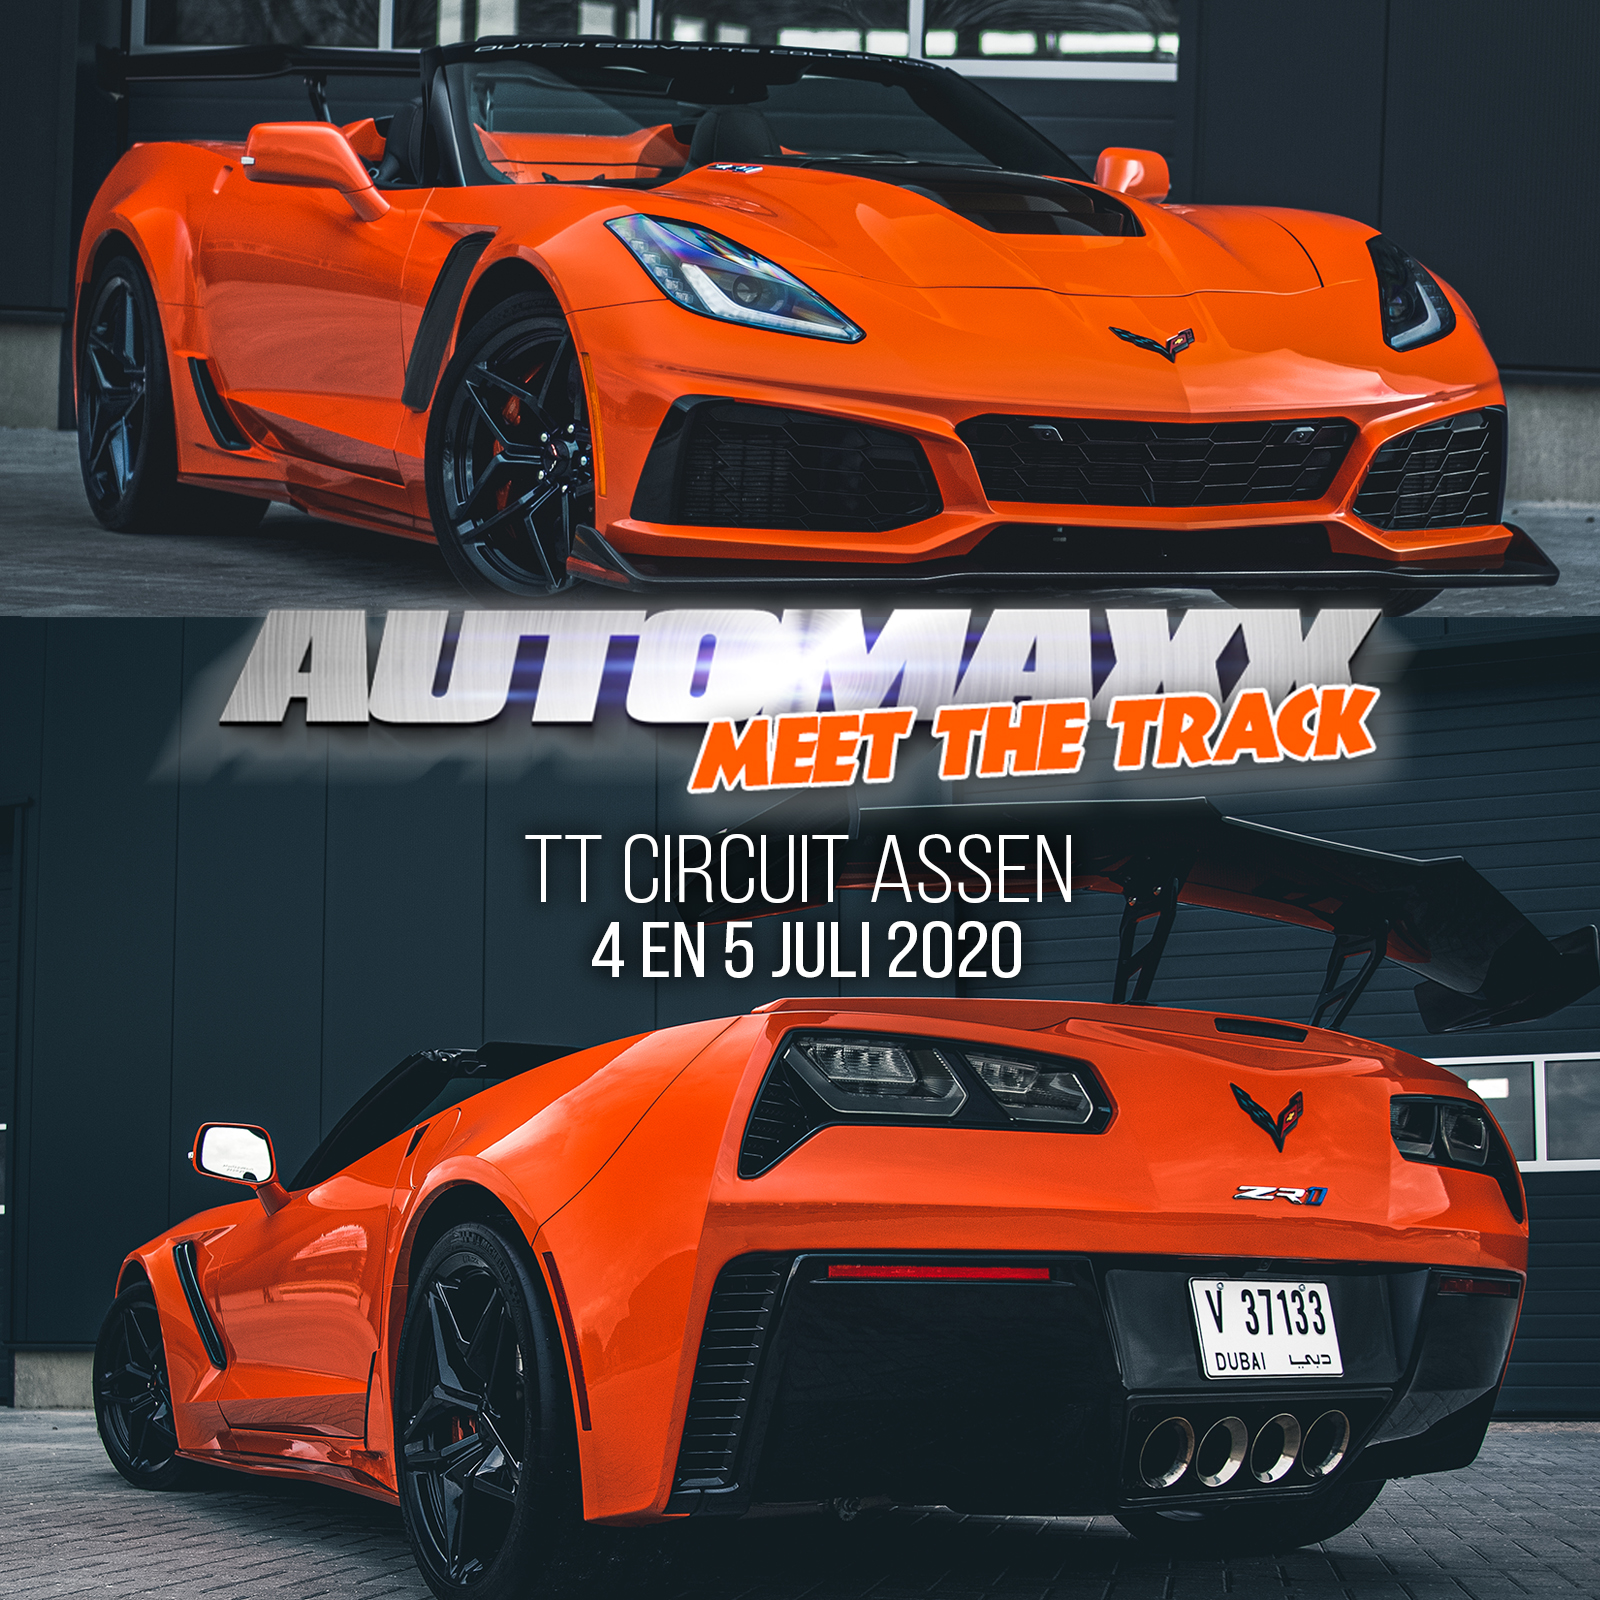 CORVETTE ZR1 CABRIO TE ZIEN OP AUTOMAXX MEET THE TRACK!